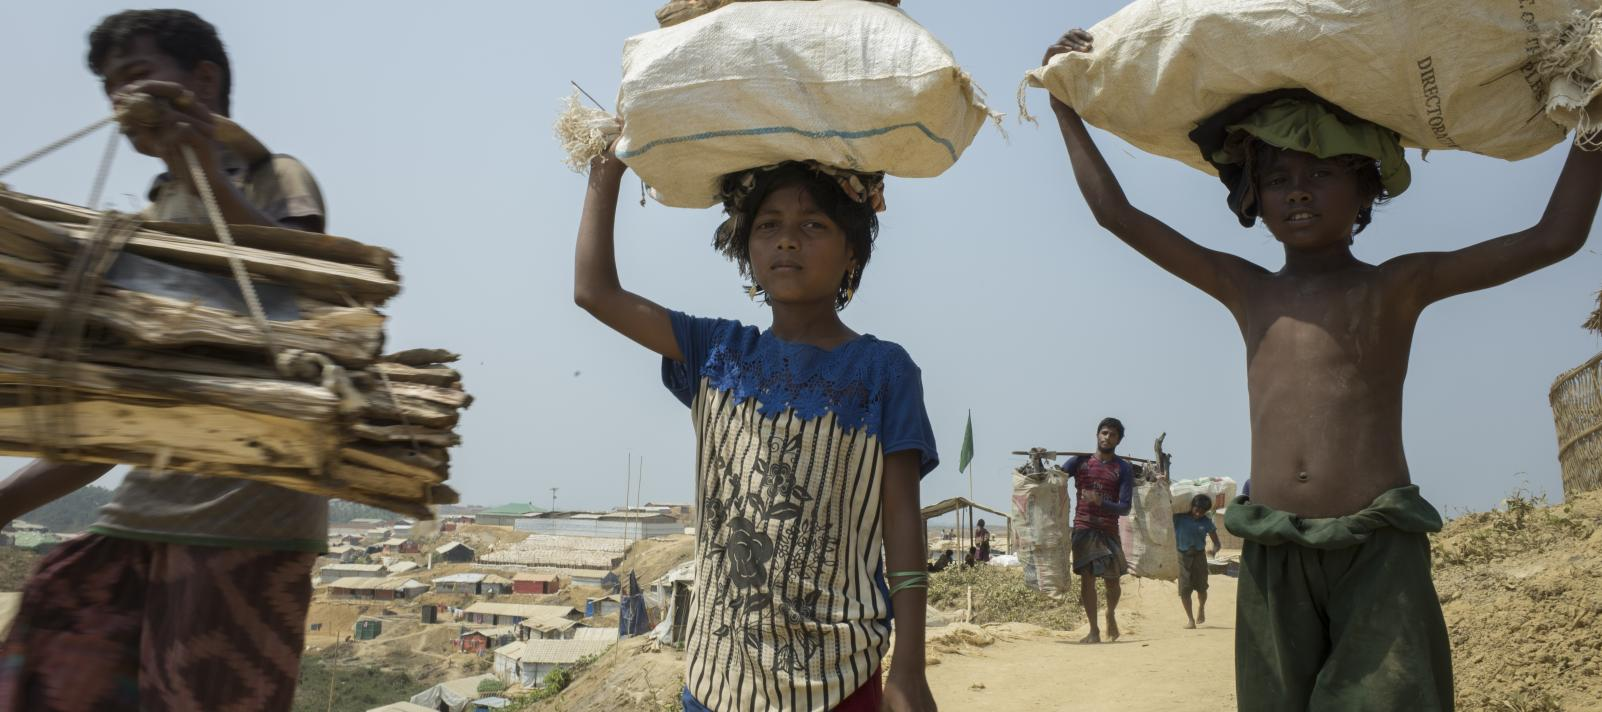 Rohingya children are collecting fire wood for cooking